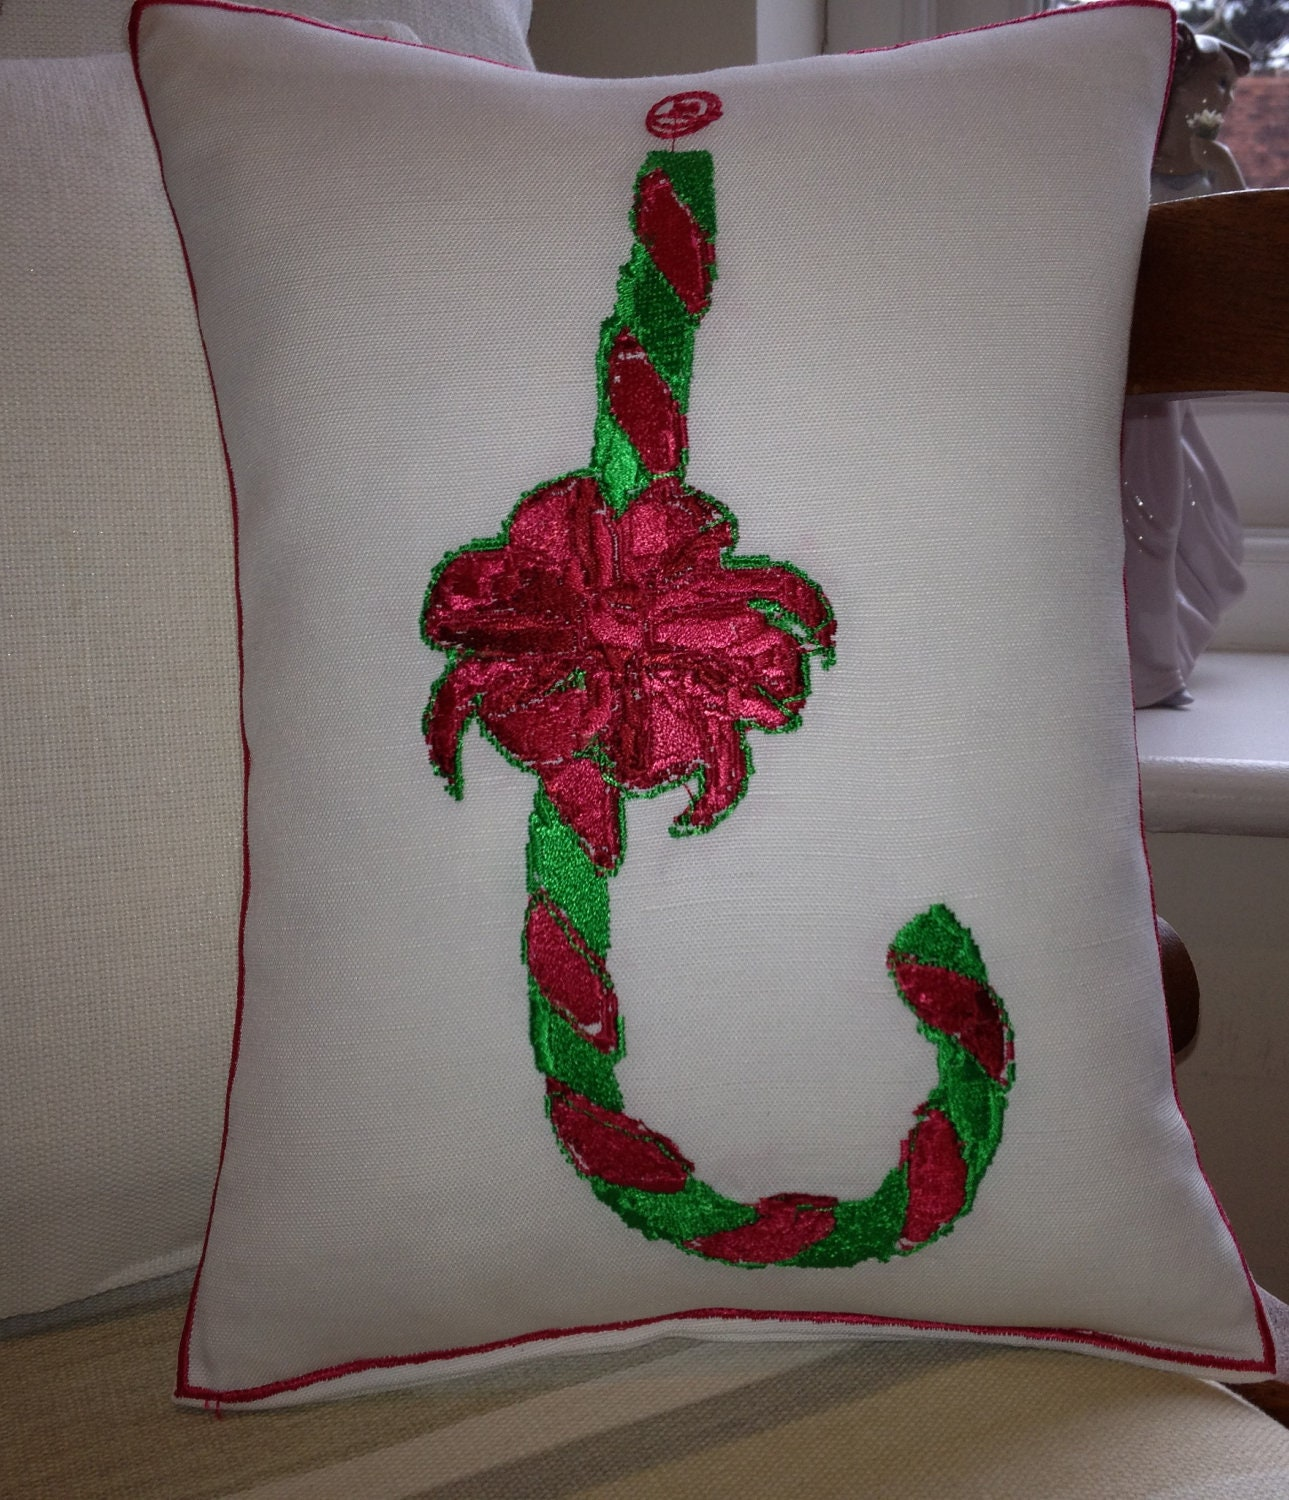 Candy Cane, Artistic Embroidery - Throw Cushion